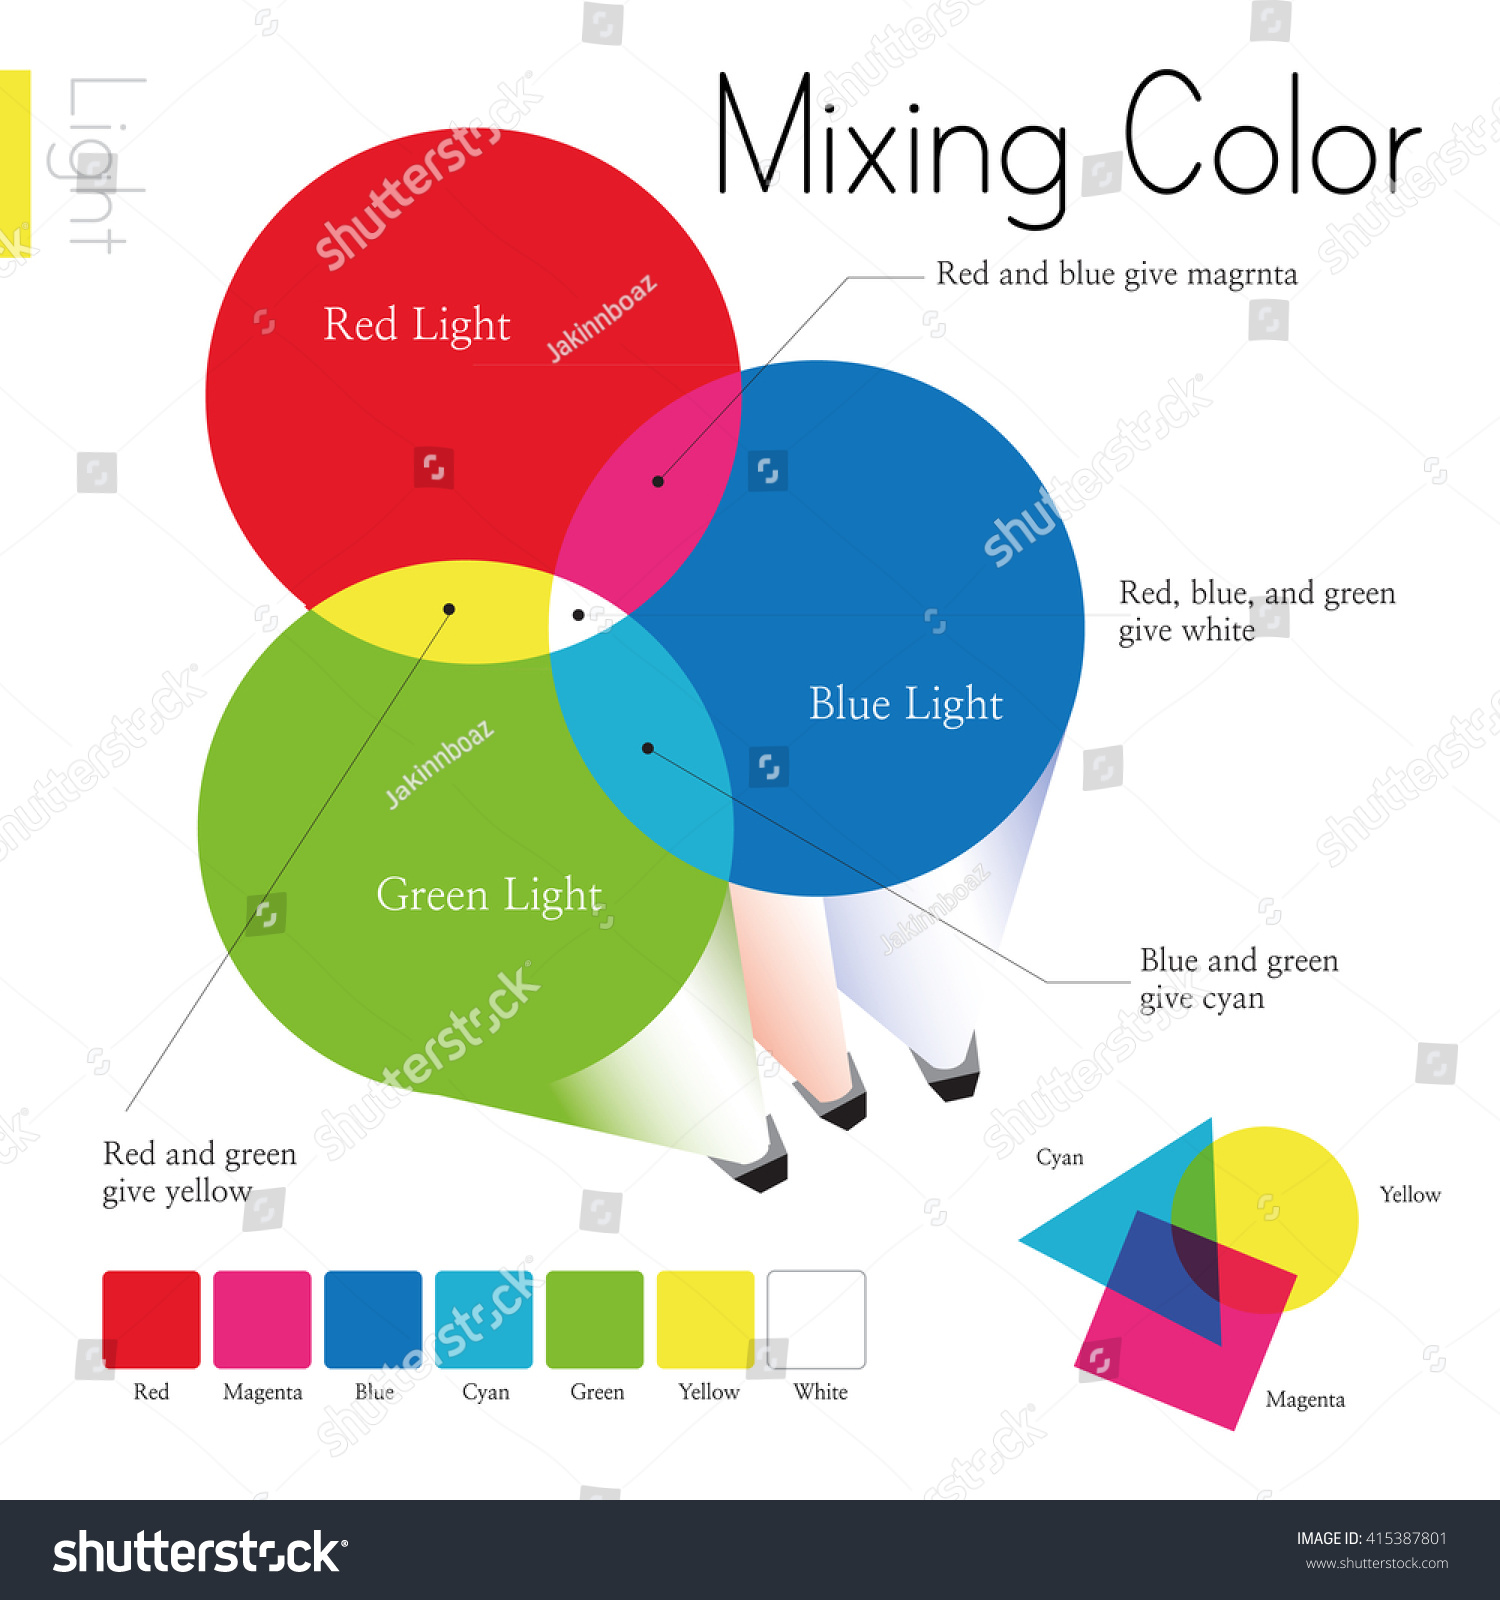 Venndiagram primary colors what colors result image vectorielle venn diagram of primary colors and what colors are the result of mixing them pooptronica Choice Image